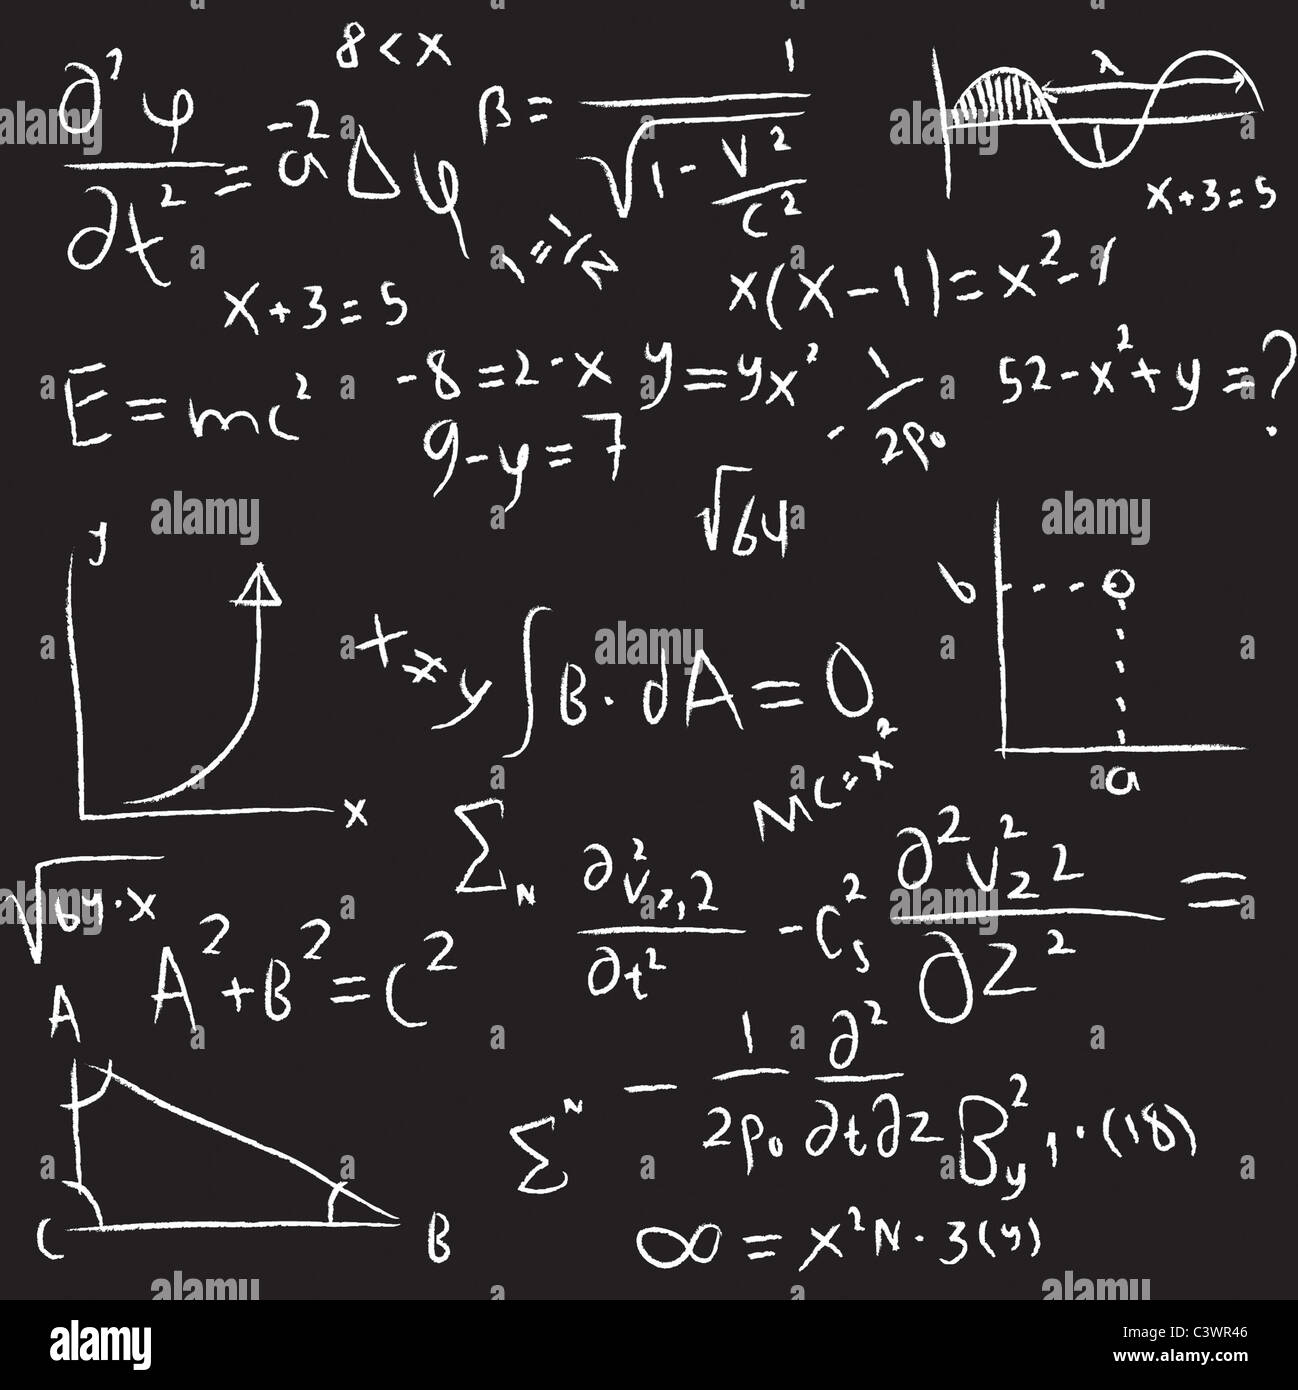 Equations - Stock Image